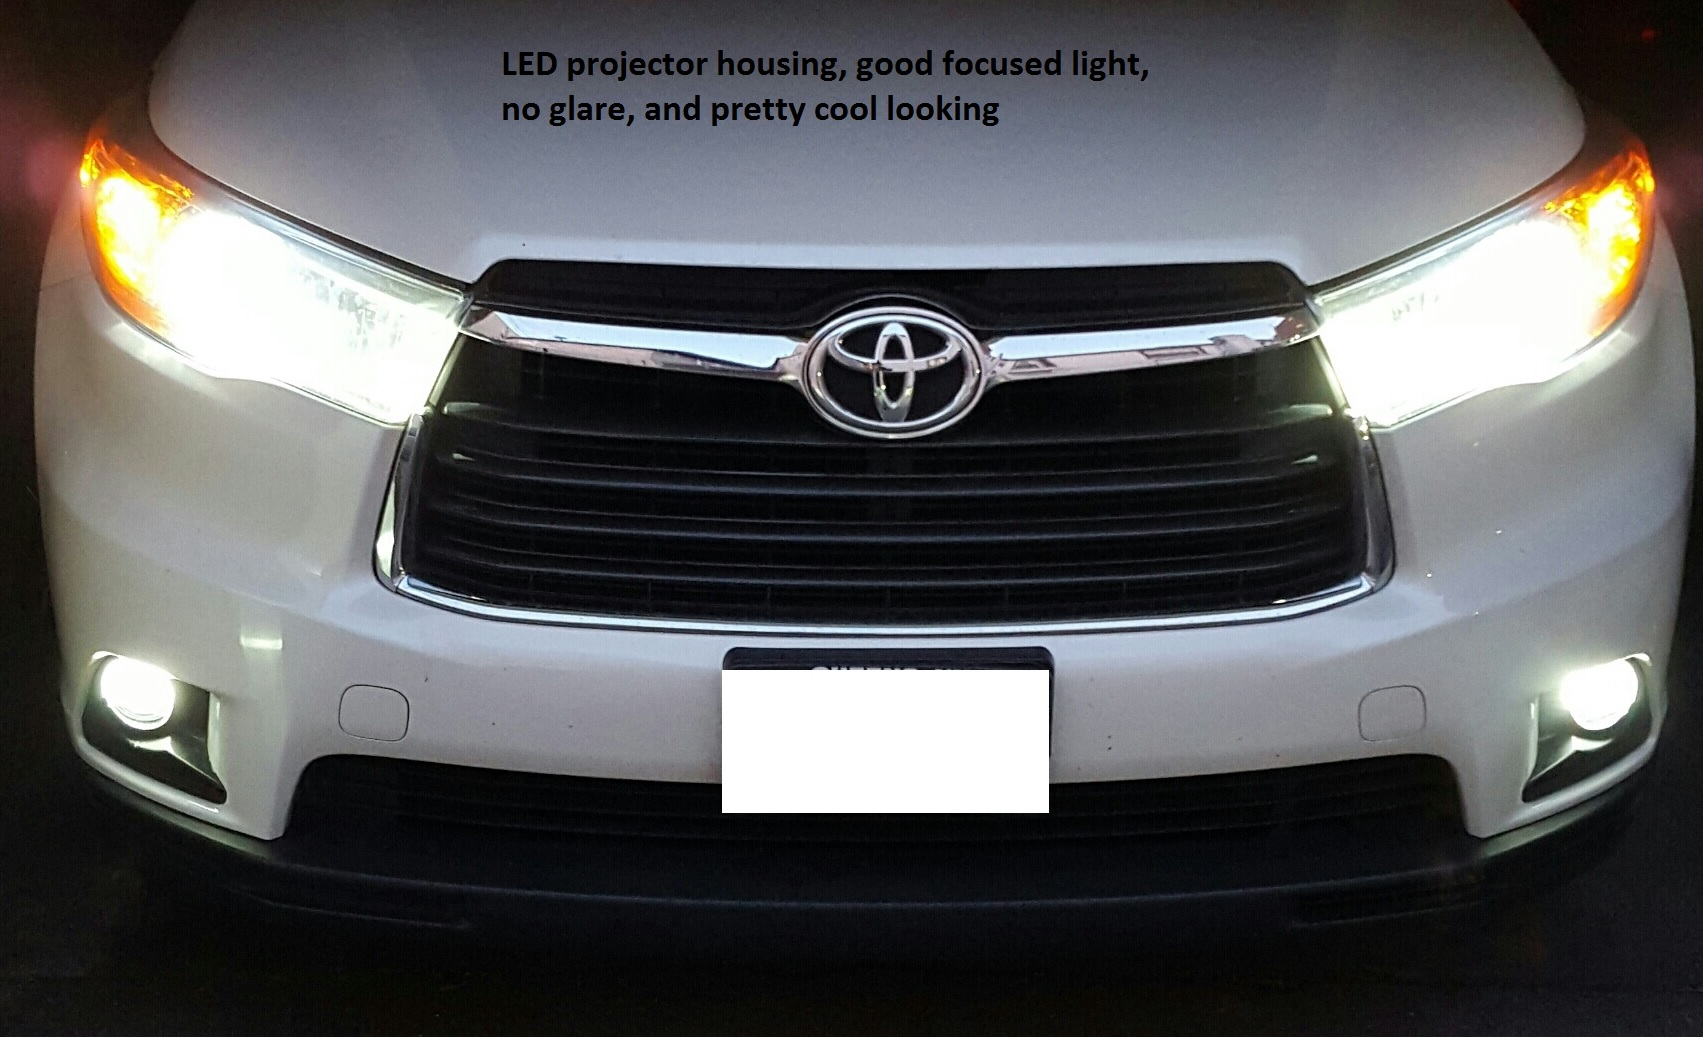 foglight install and led upgrade toyota nation forum toyota carclick image for larger version name projector jpg views 809 size 426 7